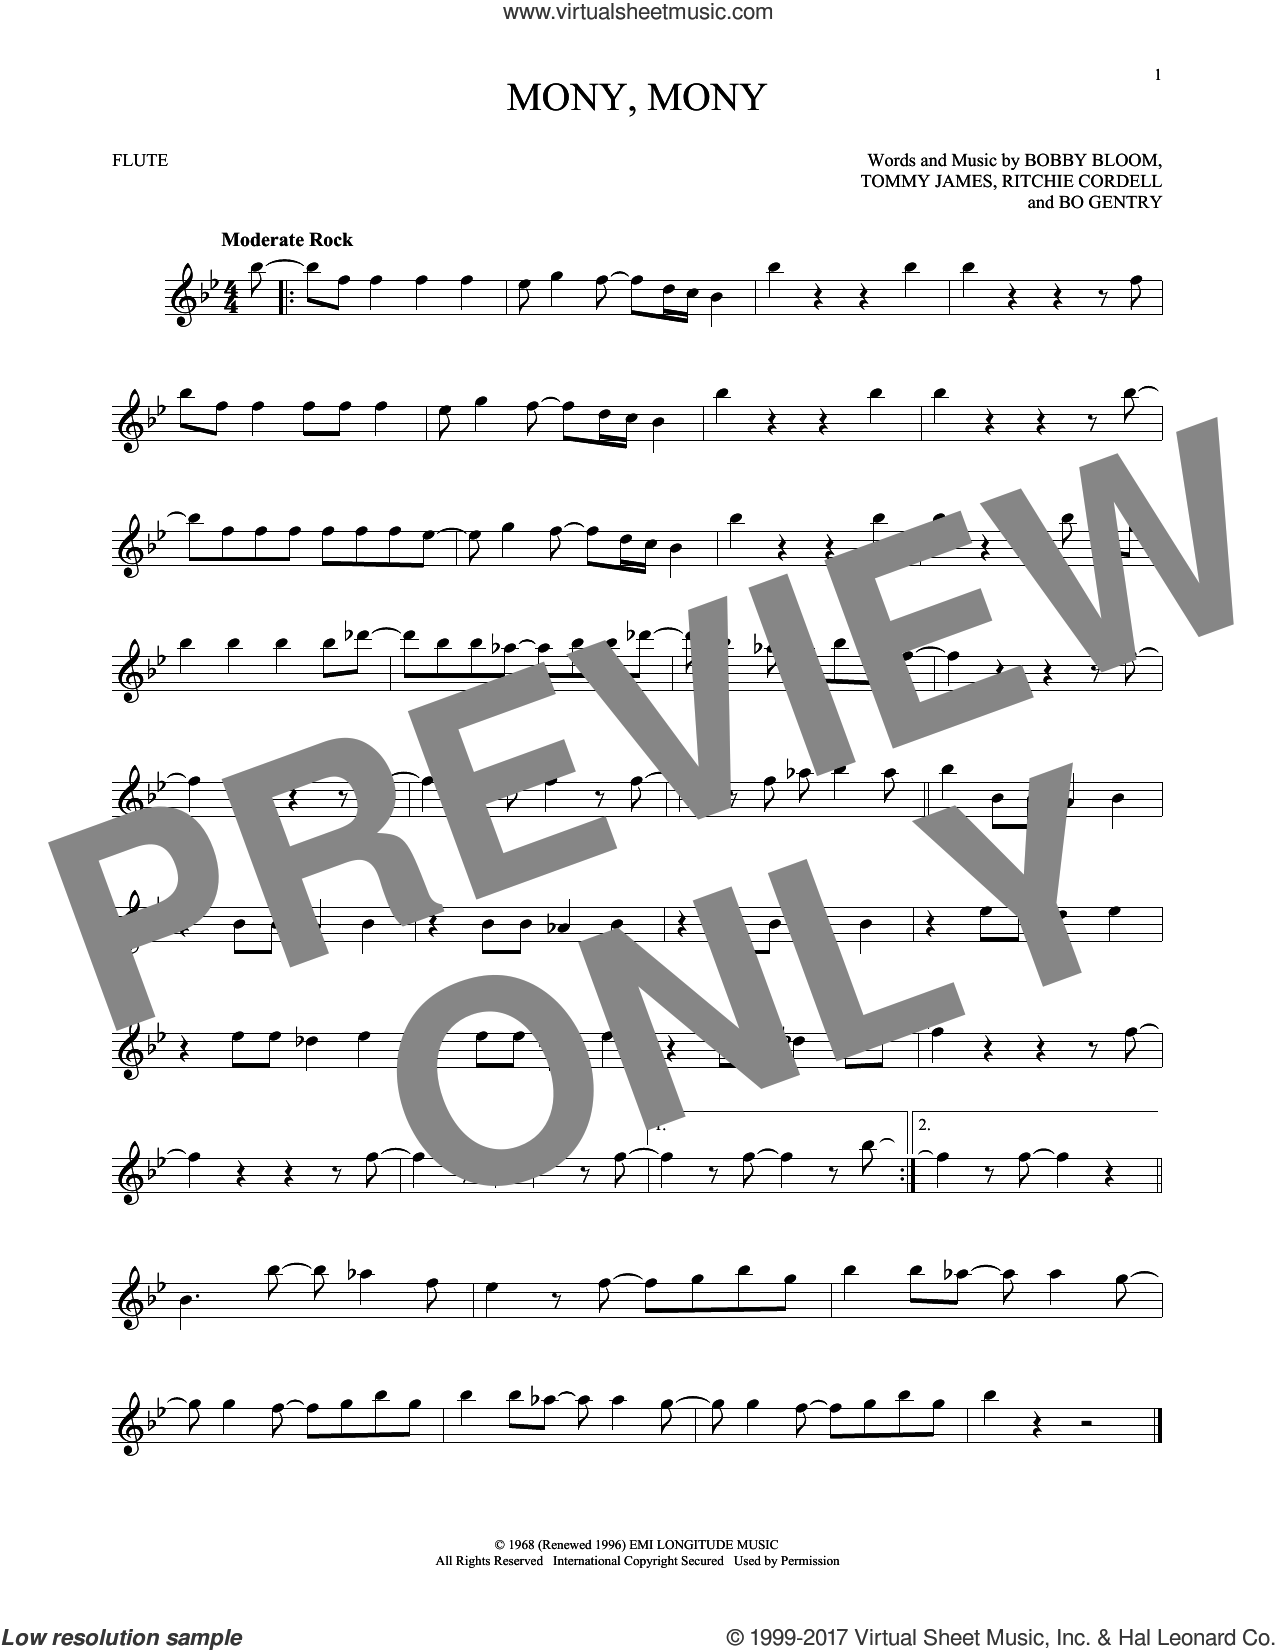 Mony, Mony sheet music for flute solo by Tommy James & The Shondells, Bo Gentry, Bobby Bloom and Ritchie Cordell, intermediate skill level